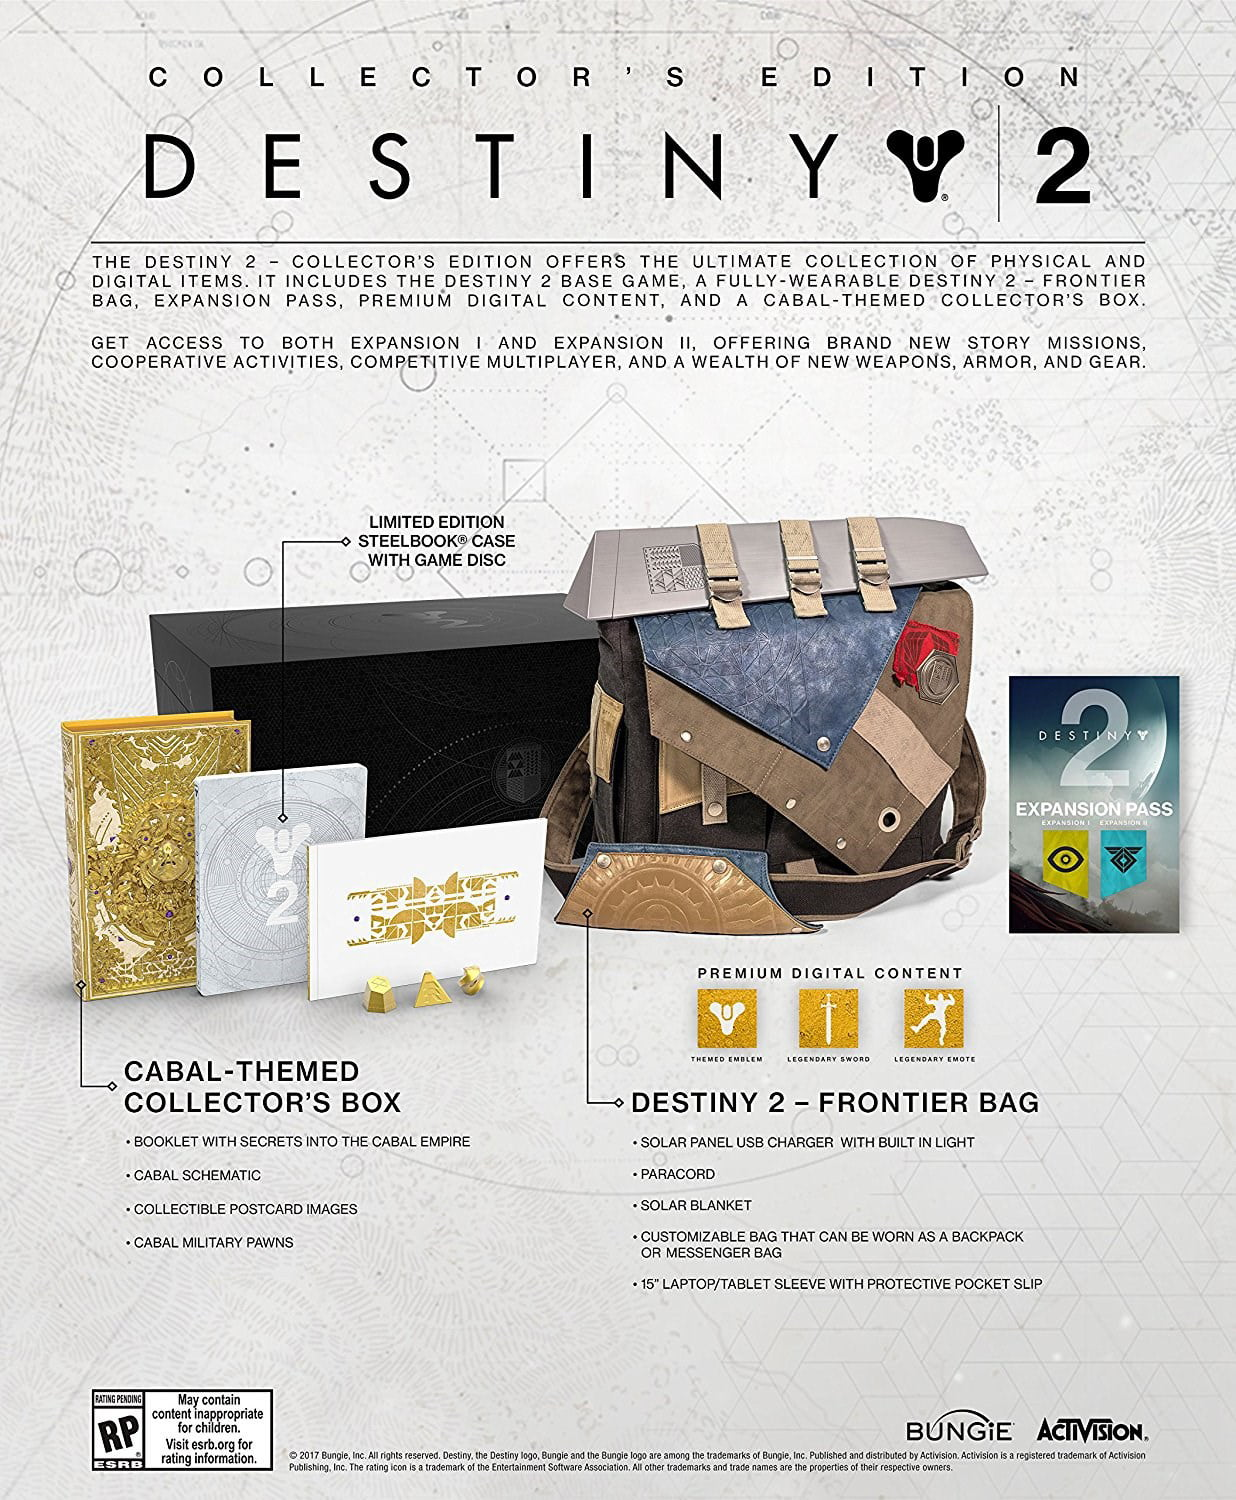 Destiny 2 Collector's Edition, Activision, PlayStation 4, 047875881037 by Activision